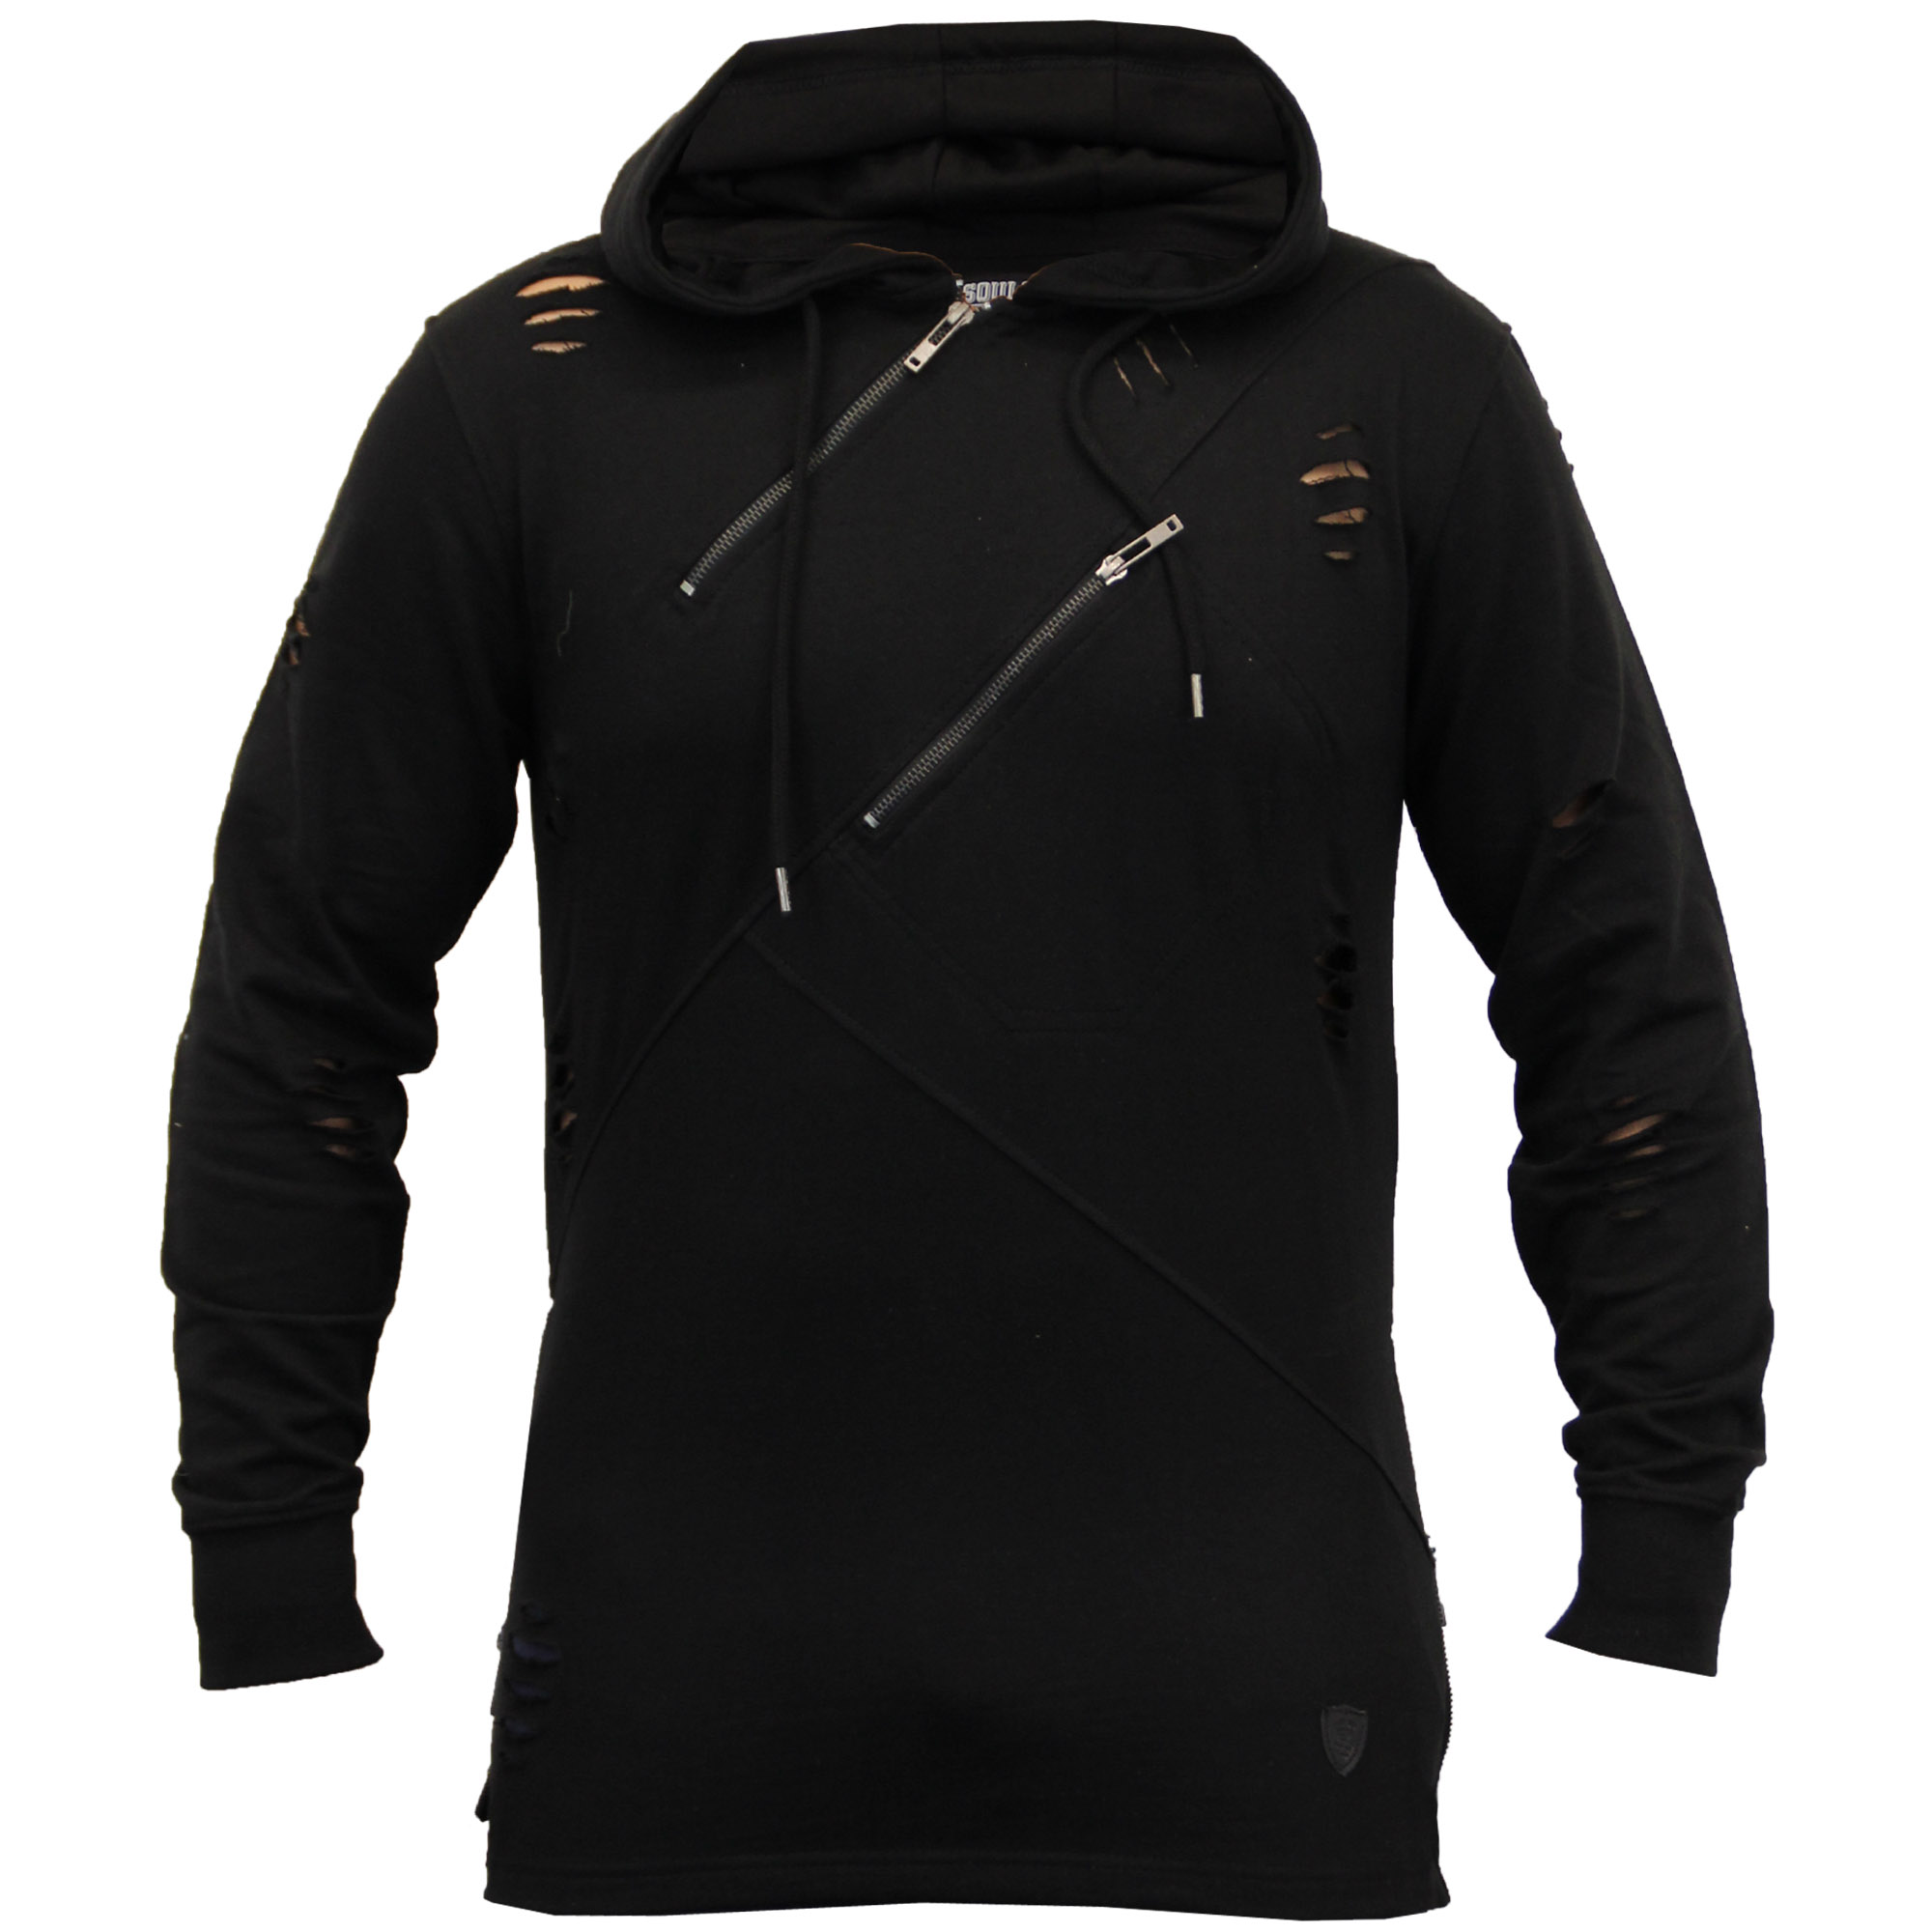 mens ripped sweatshirt top soul star long line hooded pullover t shirt winter ebay. Black Bedroom Furniture Sets. Home Design Ideas